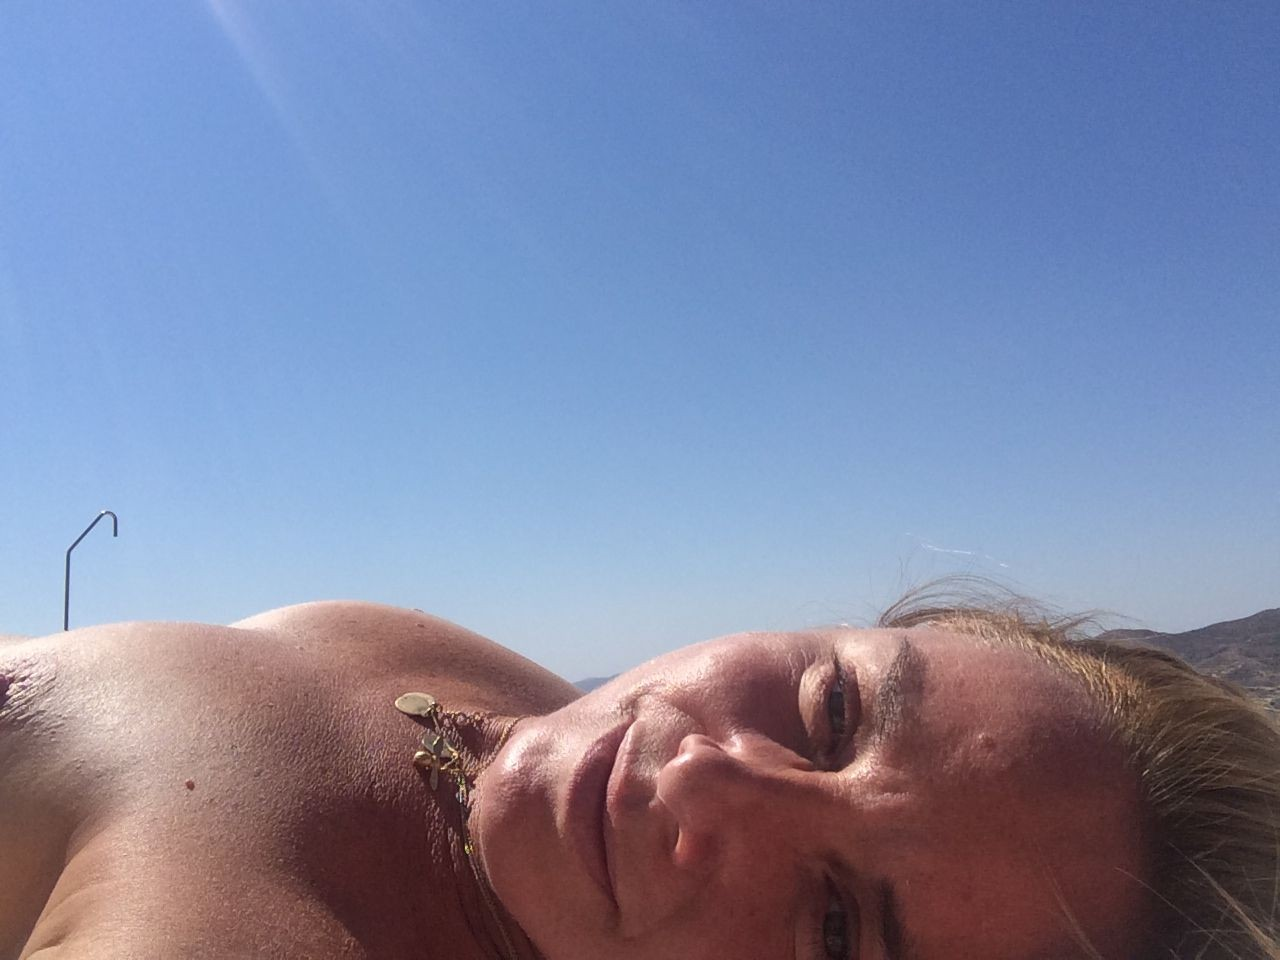 Tamzin Outhwaite Nude Photos Leaked The Fappening